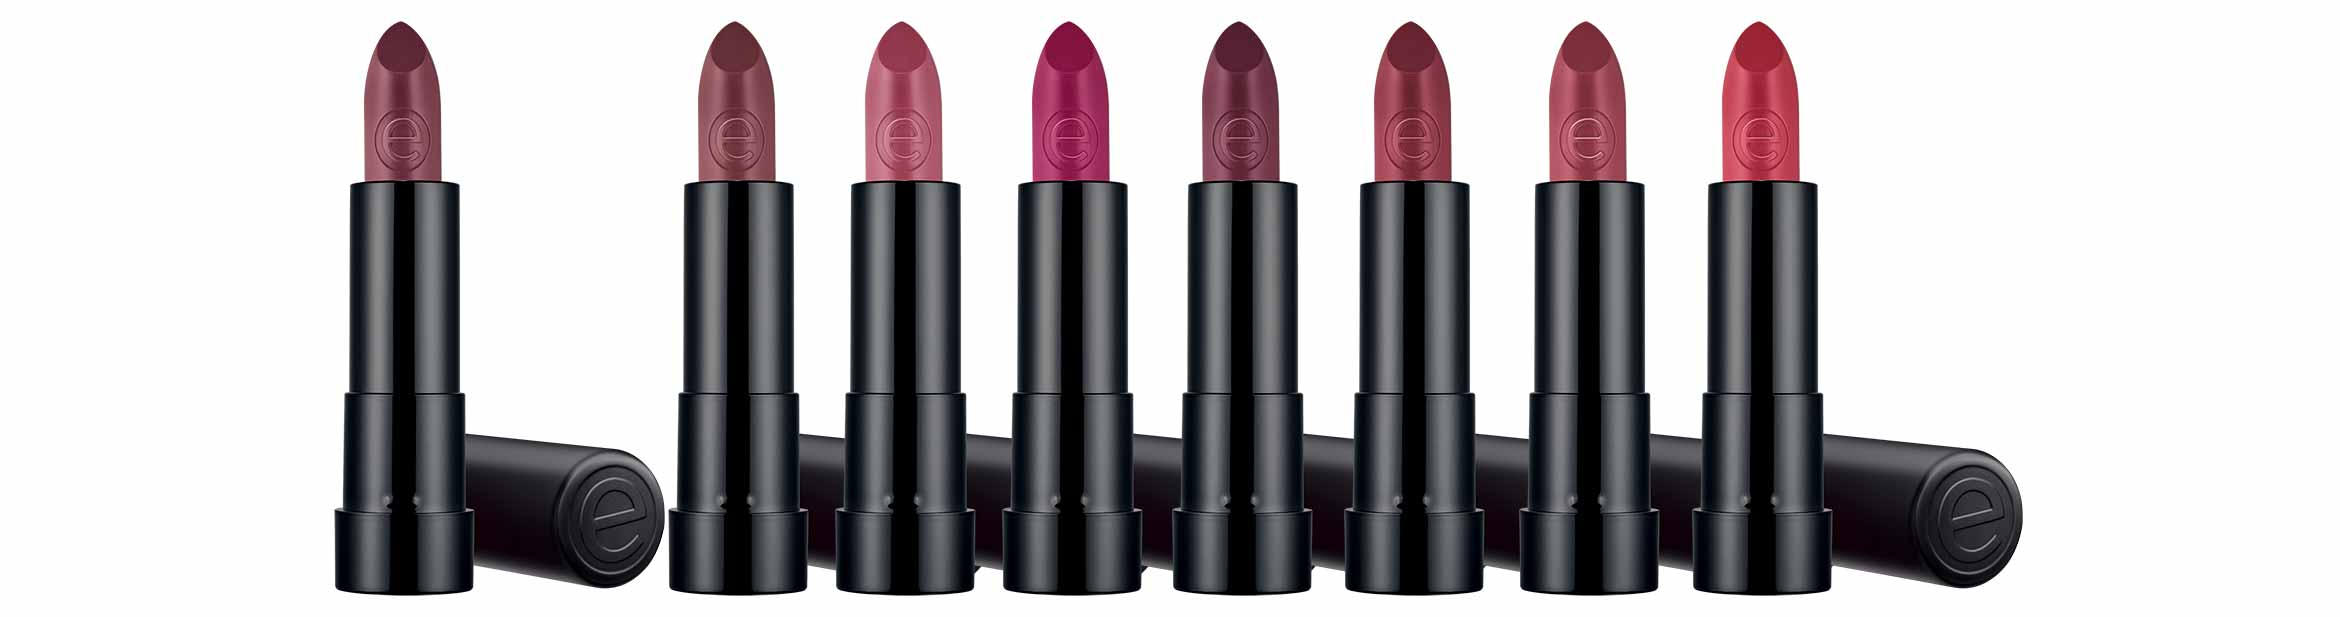 essence long lasting lipstick